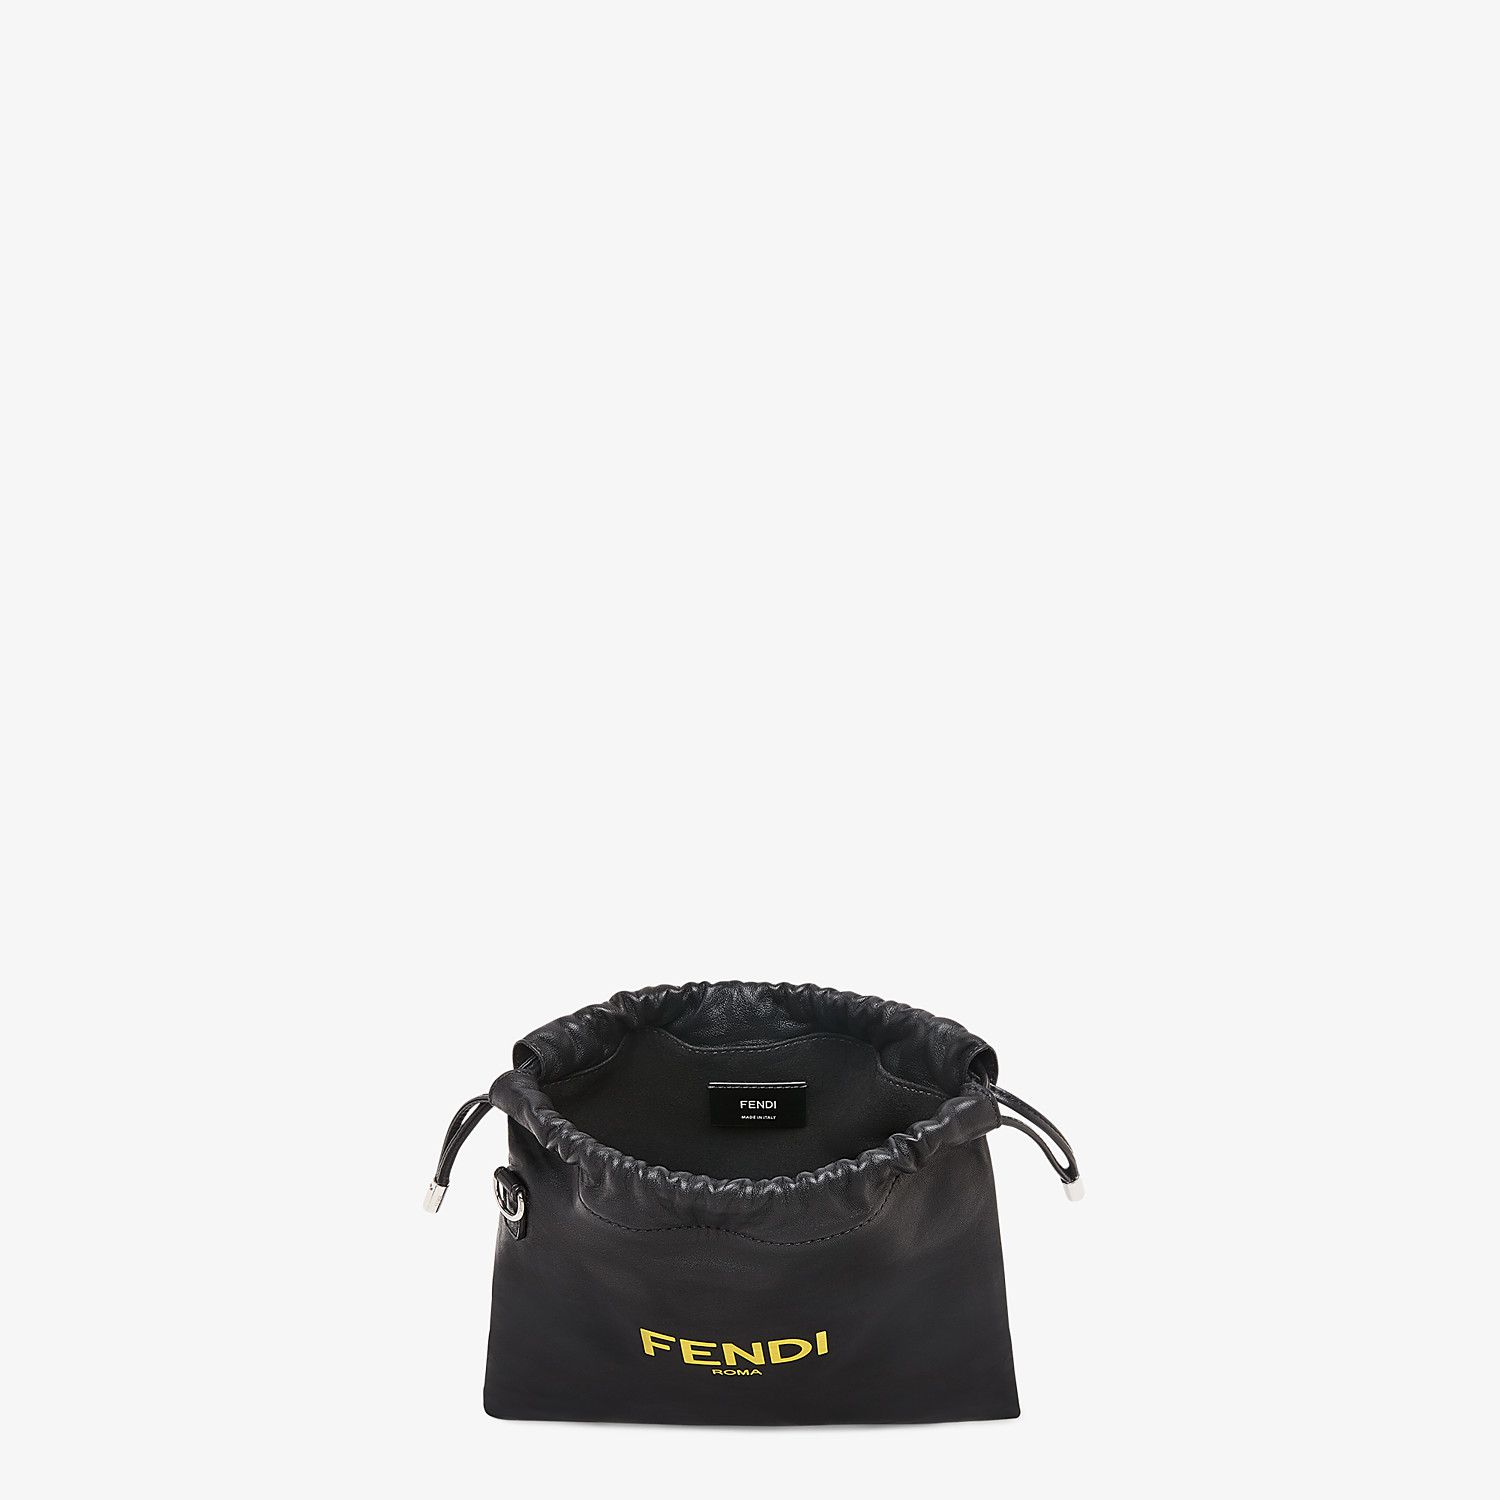 FENDI FENDI PACK SMALL POUCH - Black nappa leather bag - view 4 detail